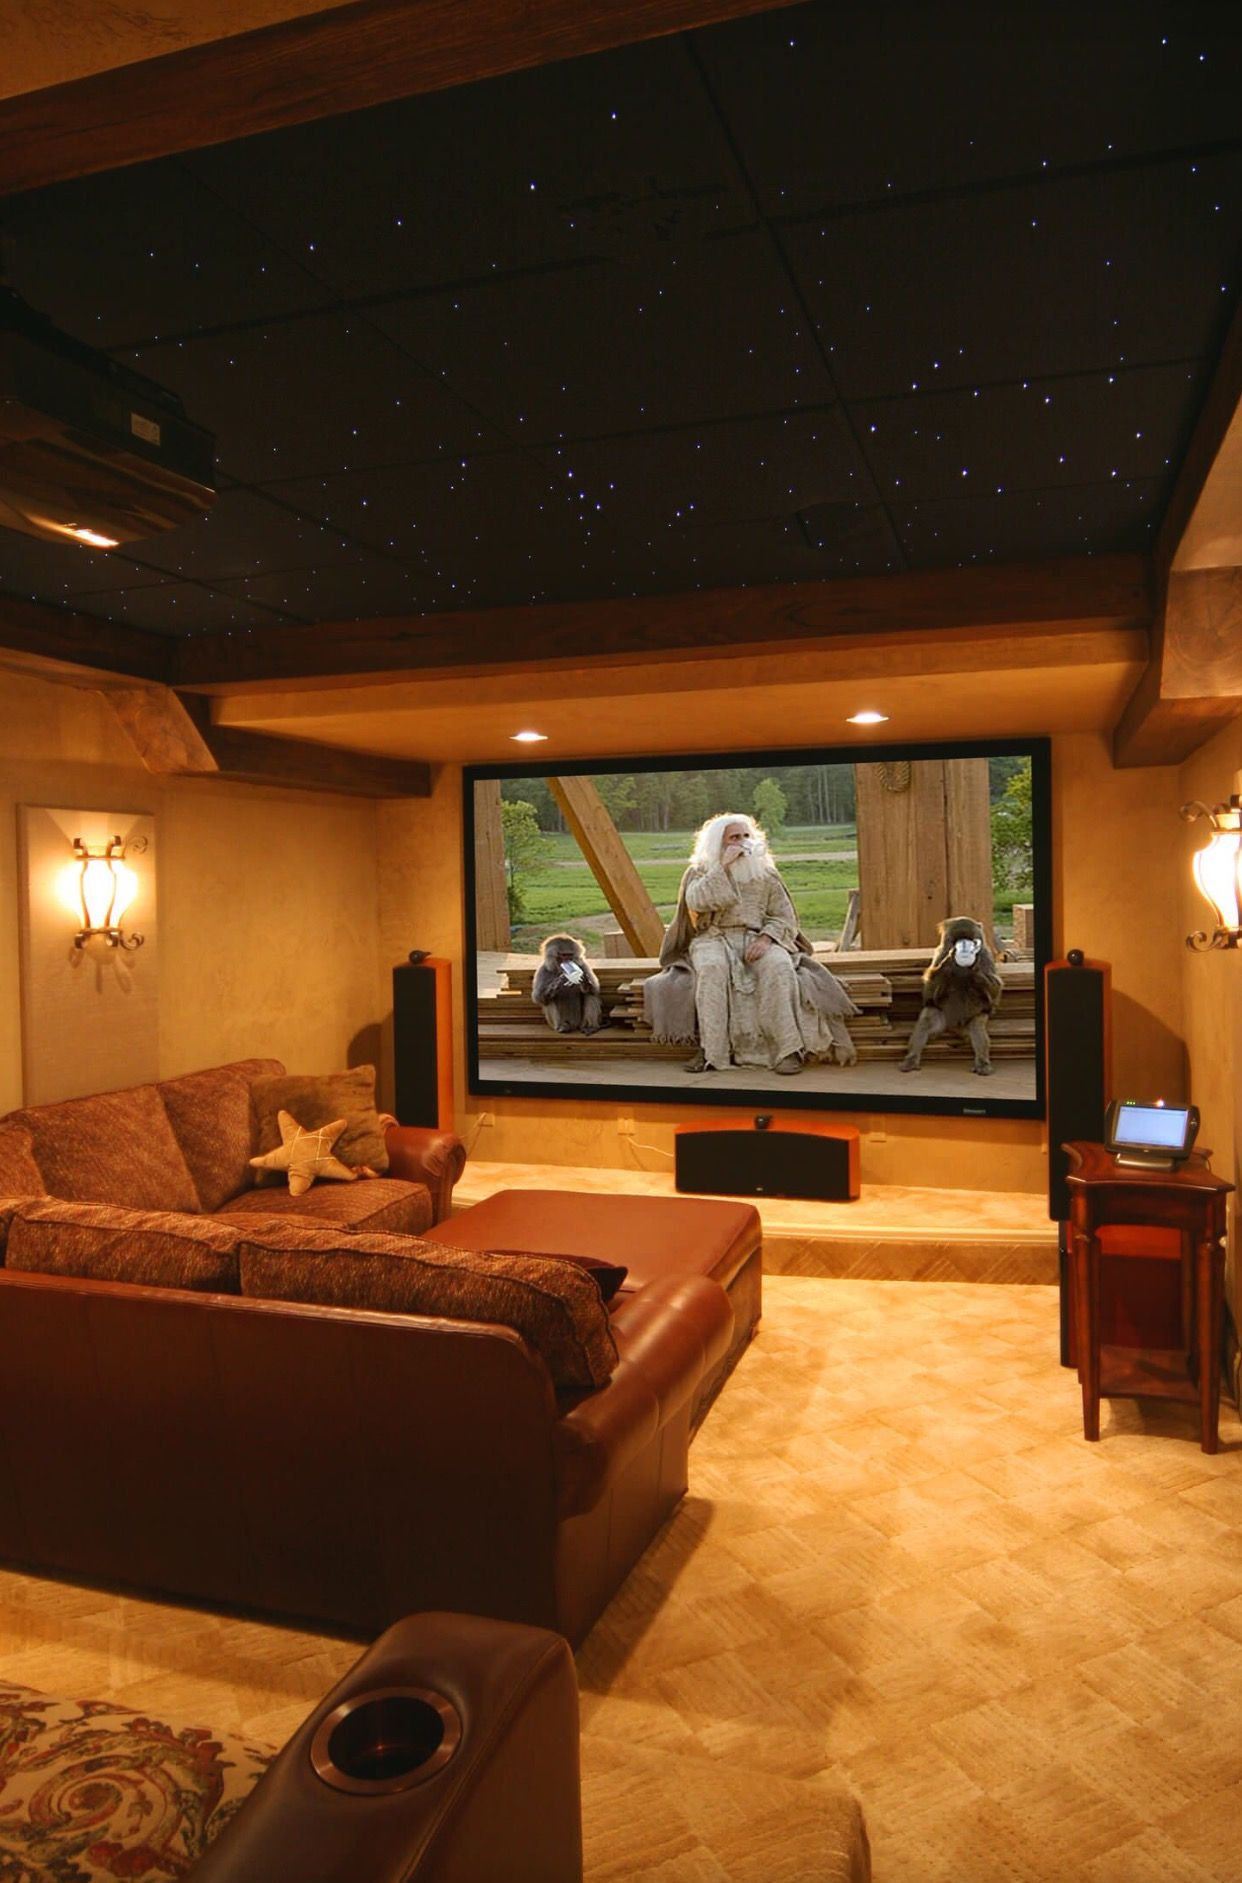 movie for budget best photos interior th home designs room simple decorating theater themed diy small youtube design unique elegant family ideas decor rooms theatre